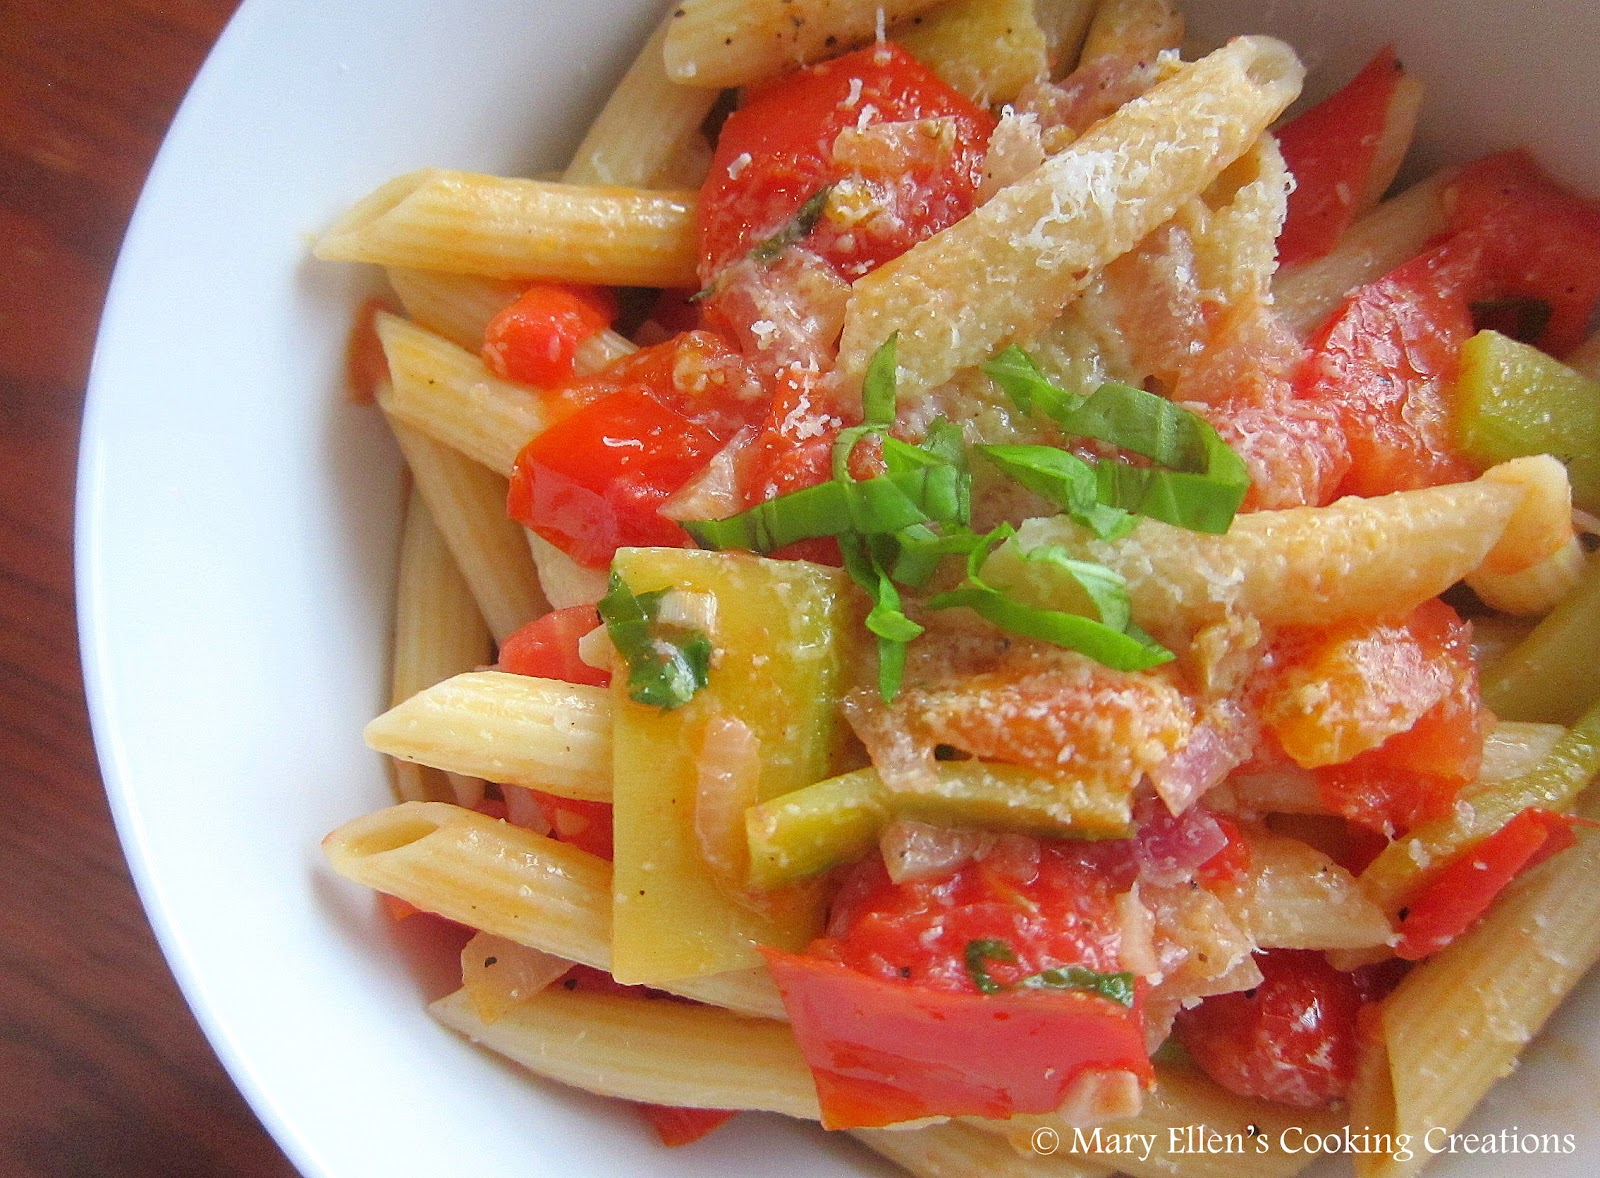 ... Cooking Creations: Light Summer Pasta with Tomatoes and Zucchini